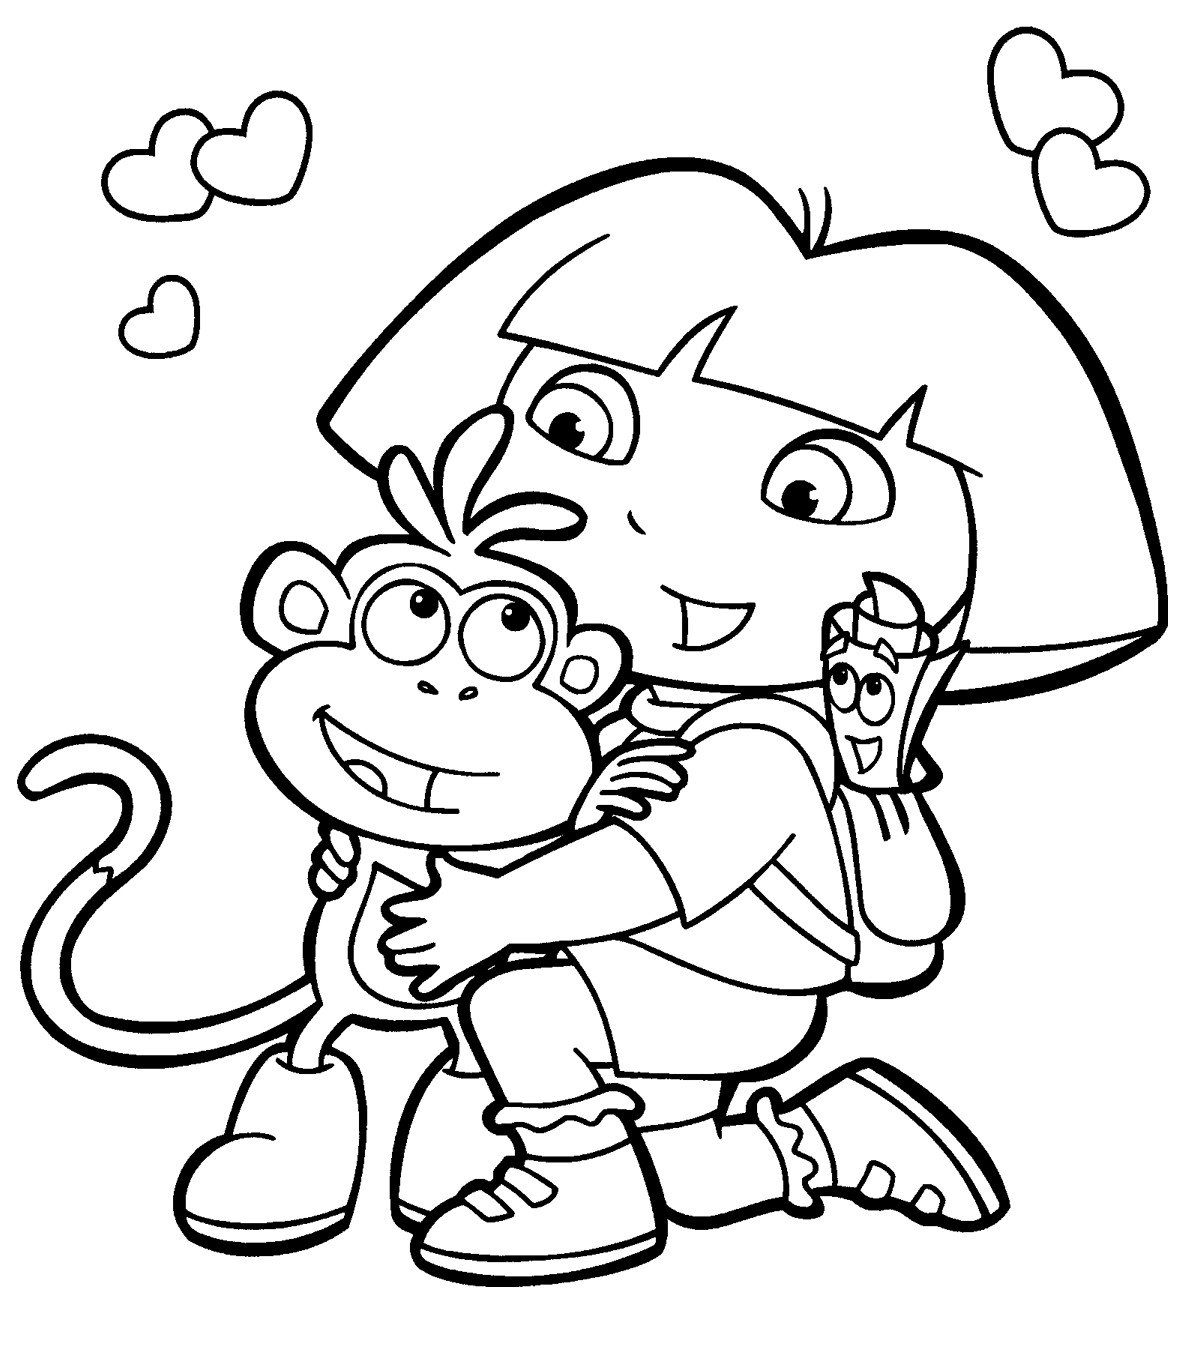 Stunning Coloring Pages Printable Girls Photos And Free For